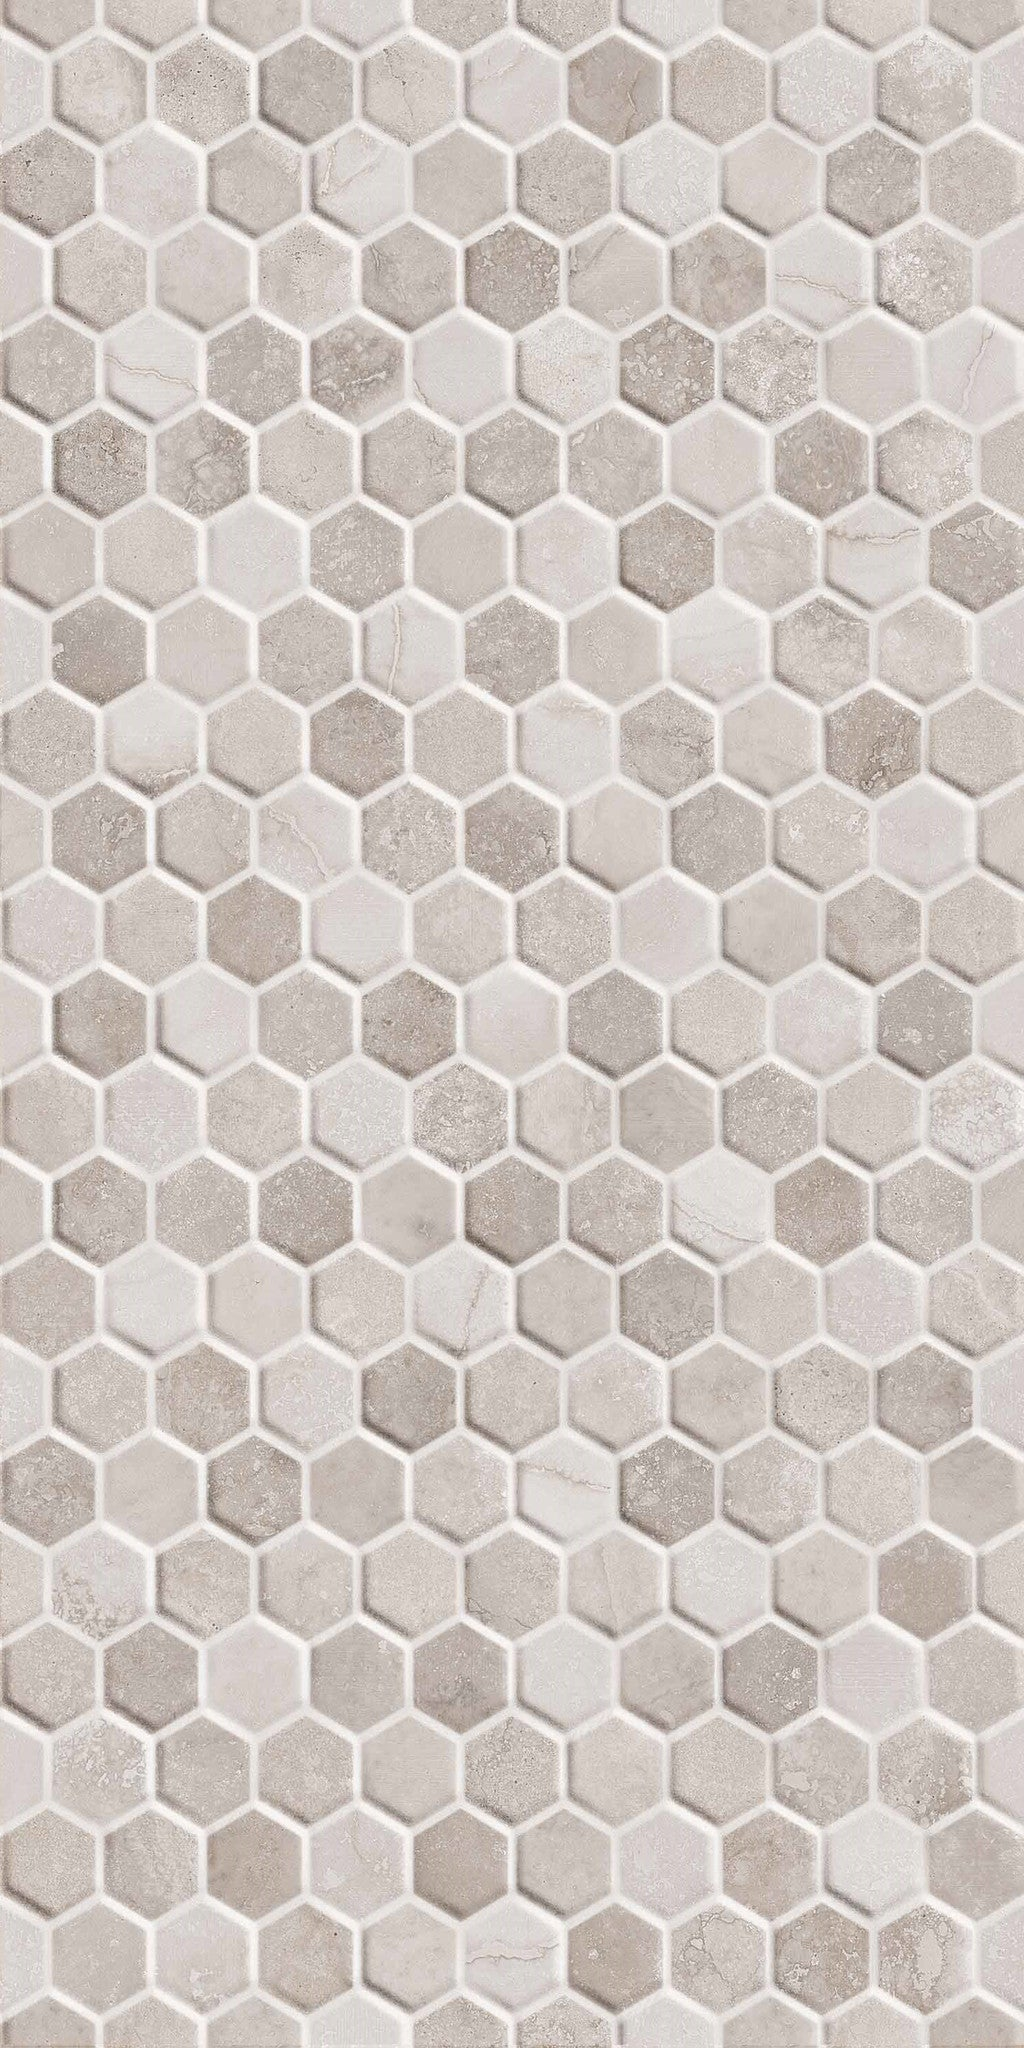 Termae Wall & Floor Combination Tile – ECO TILE IMPORTS